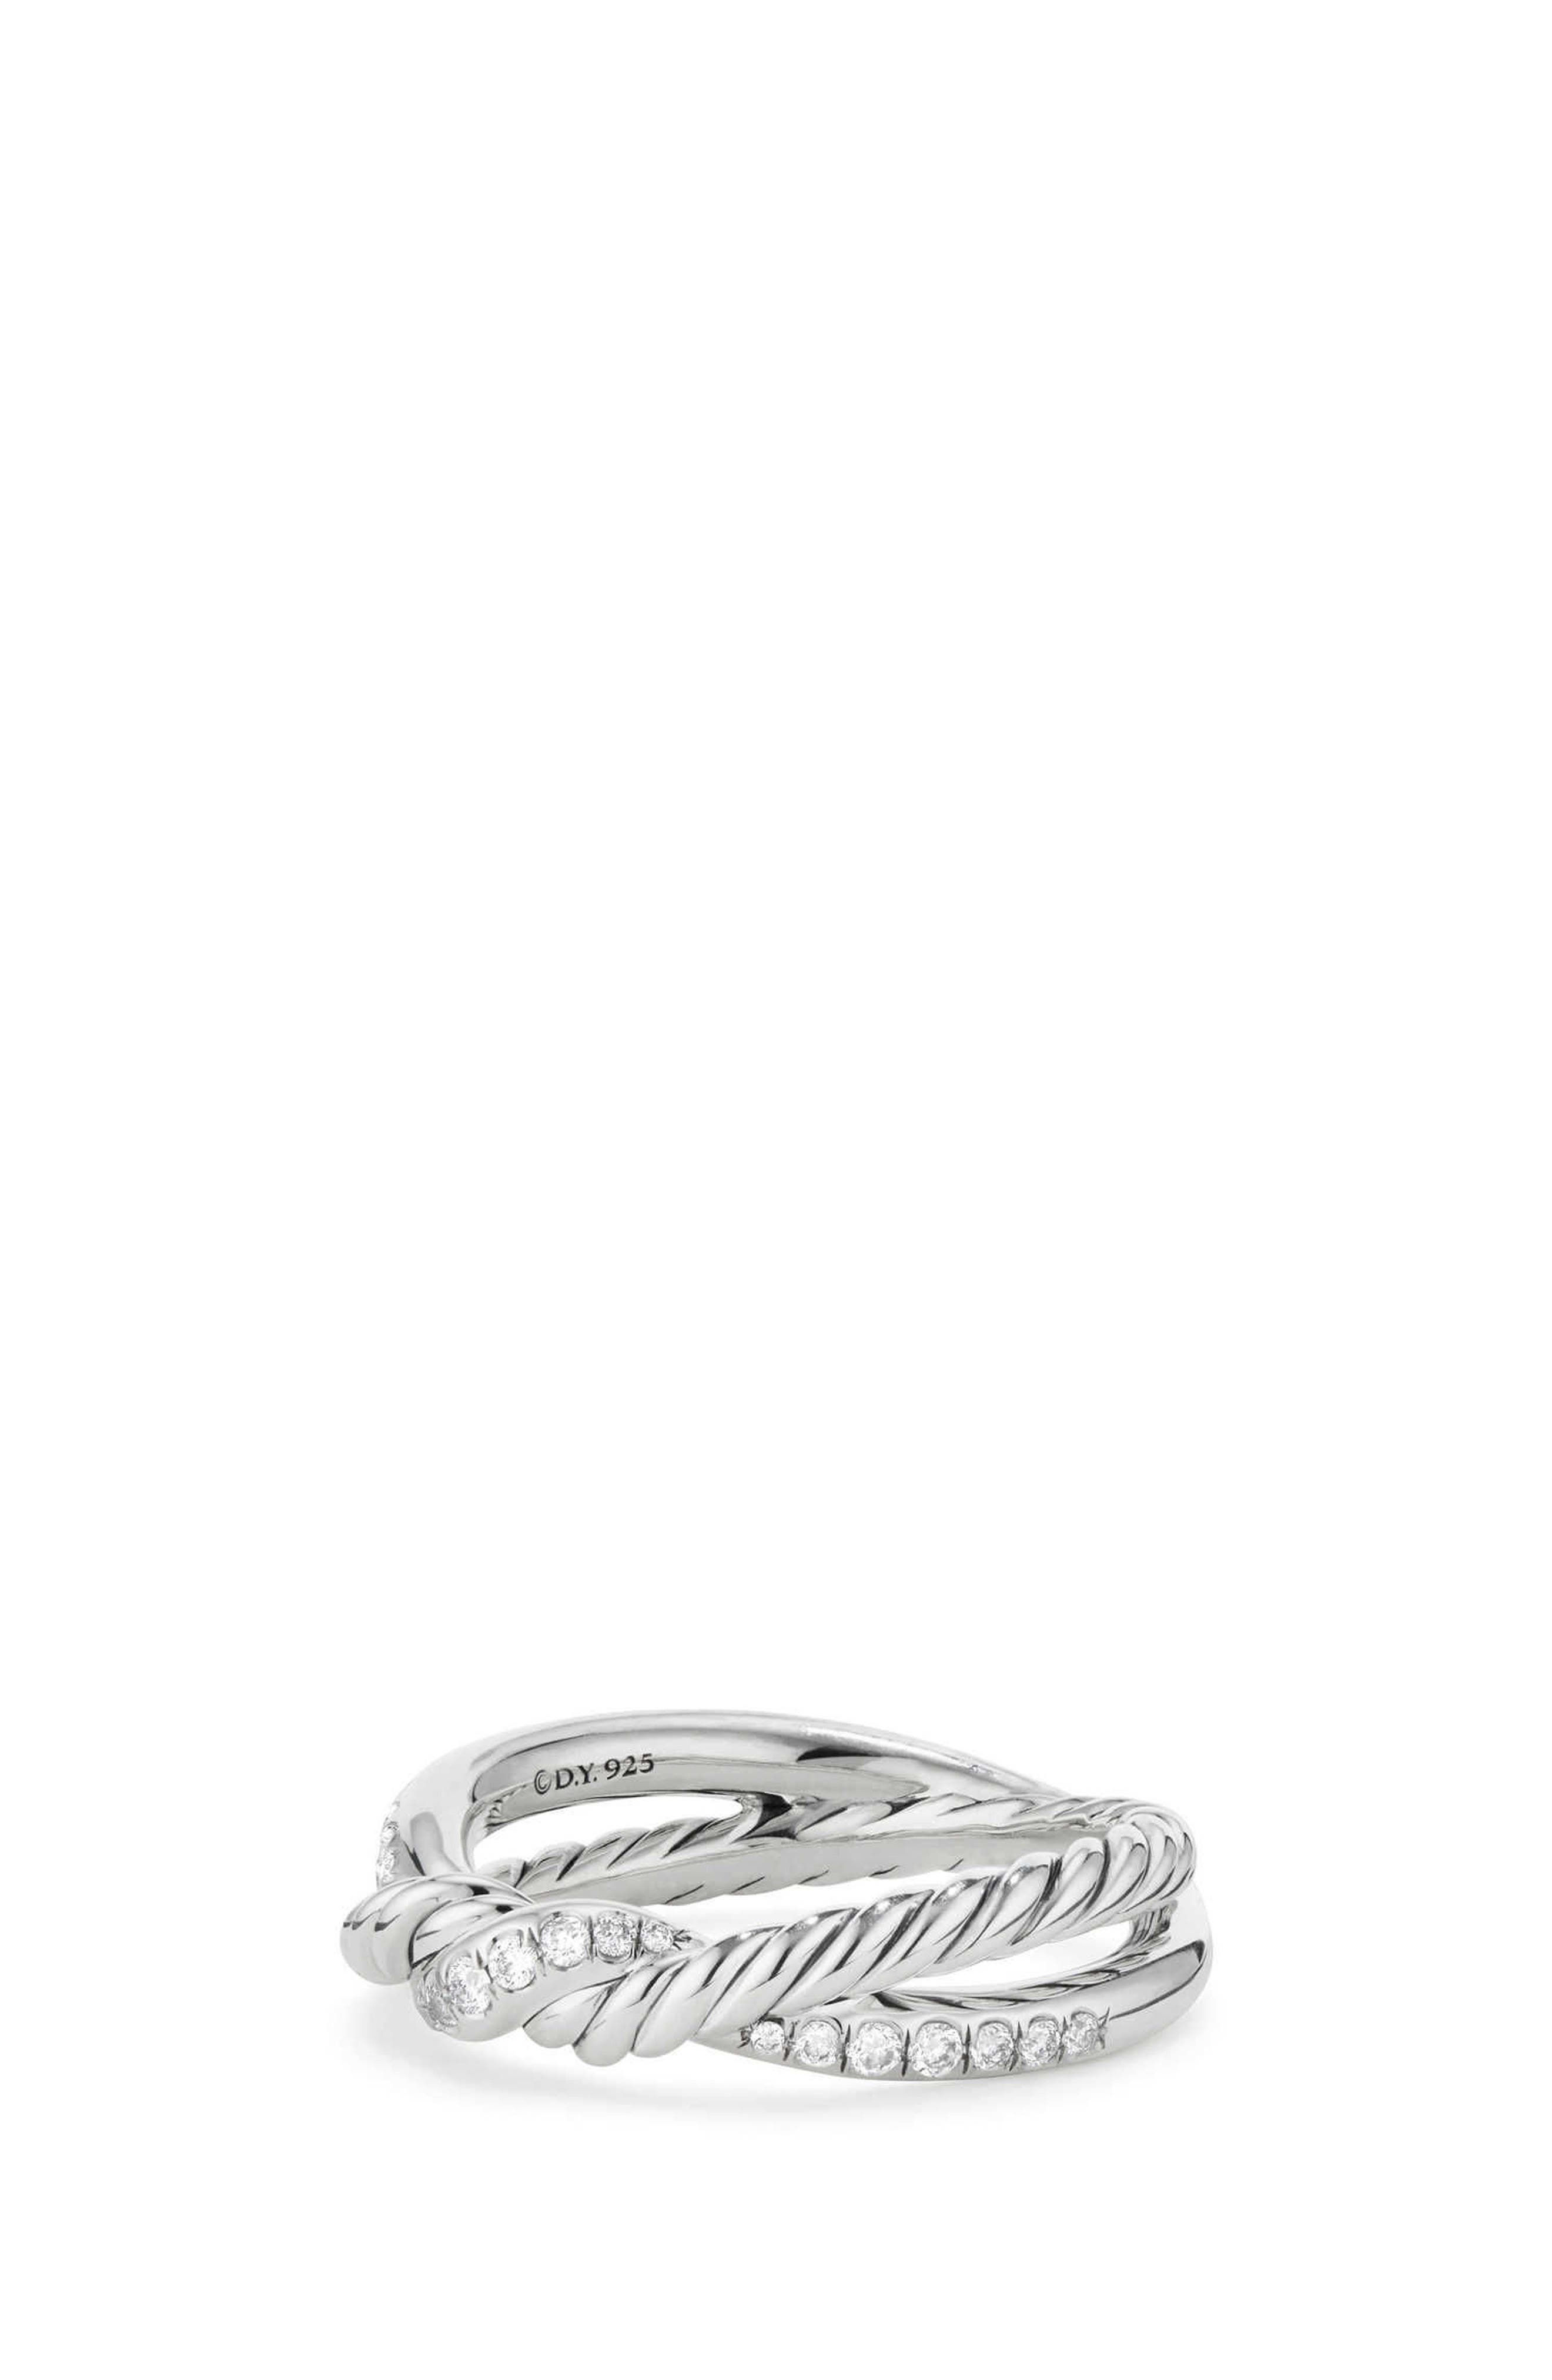 Continuance Twist Ring with Diamonds,                             Alternate thumbnail 2, color,                             SILVER/ DIAMOND